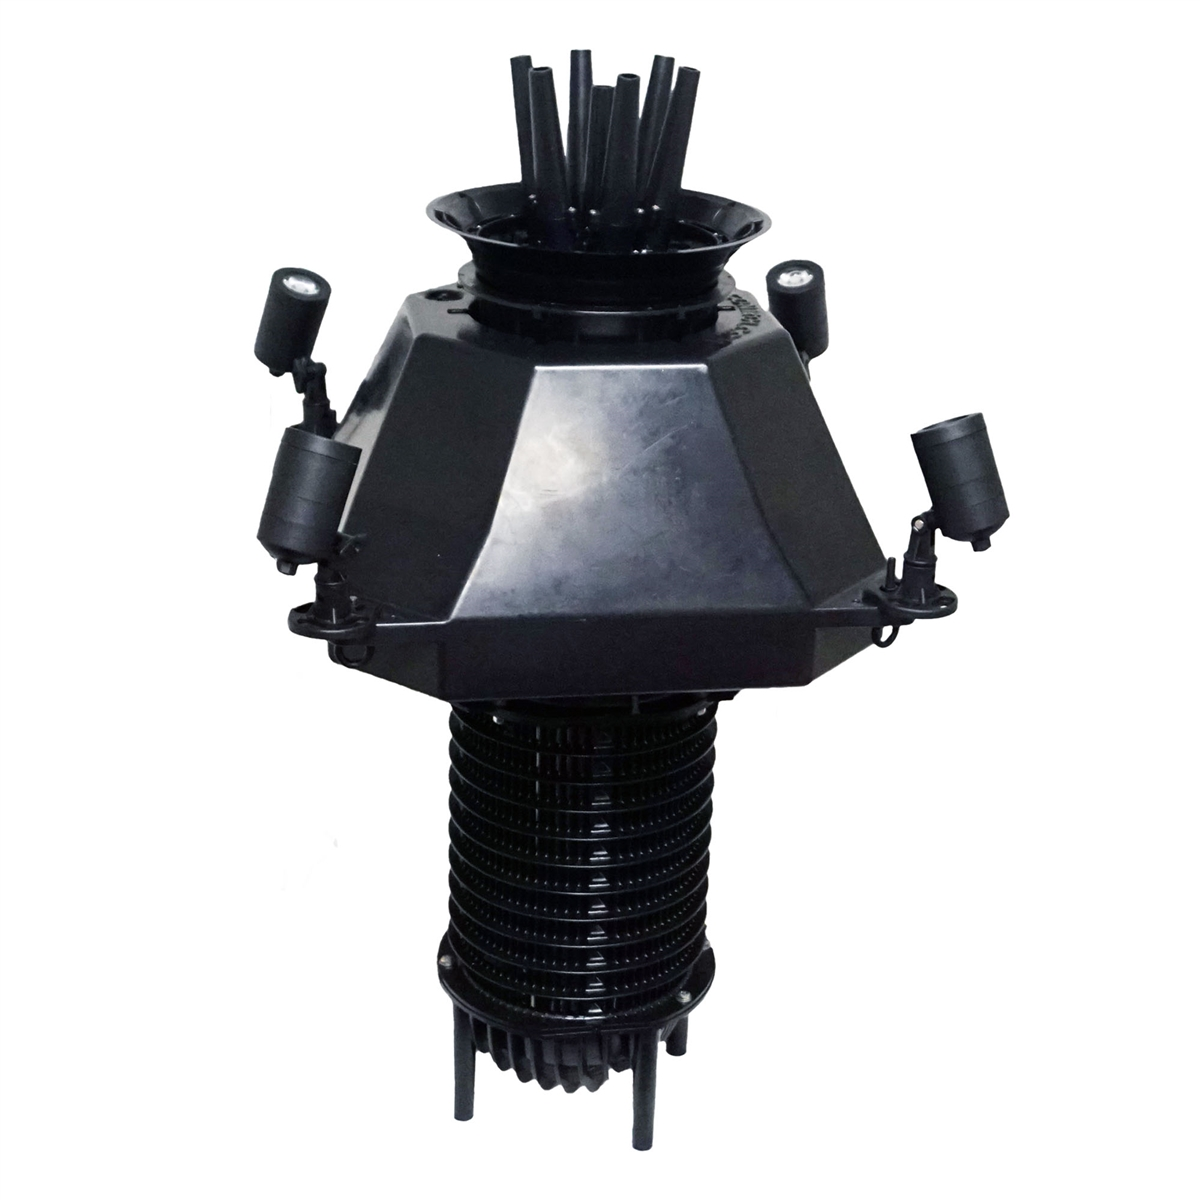 Aqua Premiere Floating Fountain with 19-inch Black Float, (6) Spray Pattern Nozzles, 1 HP Pump with 100' Cord and (4) 9-Watt Color Changing Light Kit with Remote - APF1HP-4X9-100